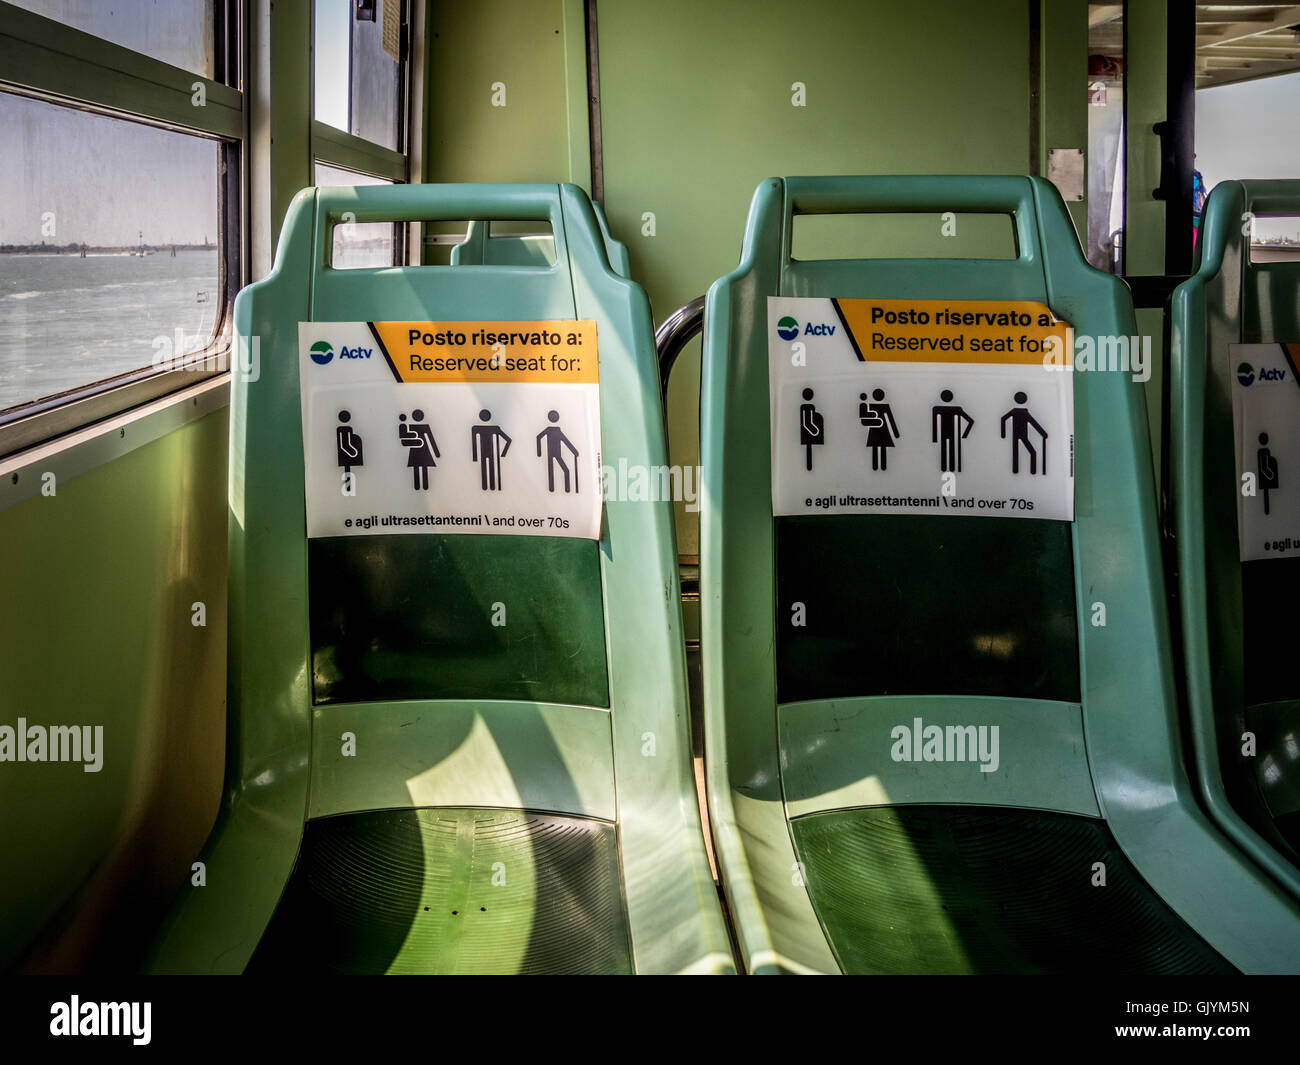 Seats reserved for the elderly, infirm and pregnant women, on a vaporetto, Venice, Italy. - Stock Image